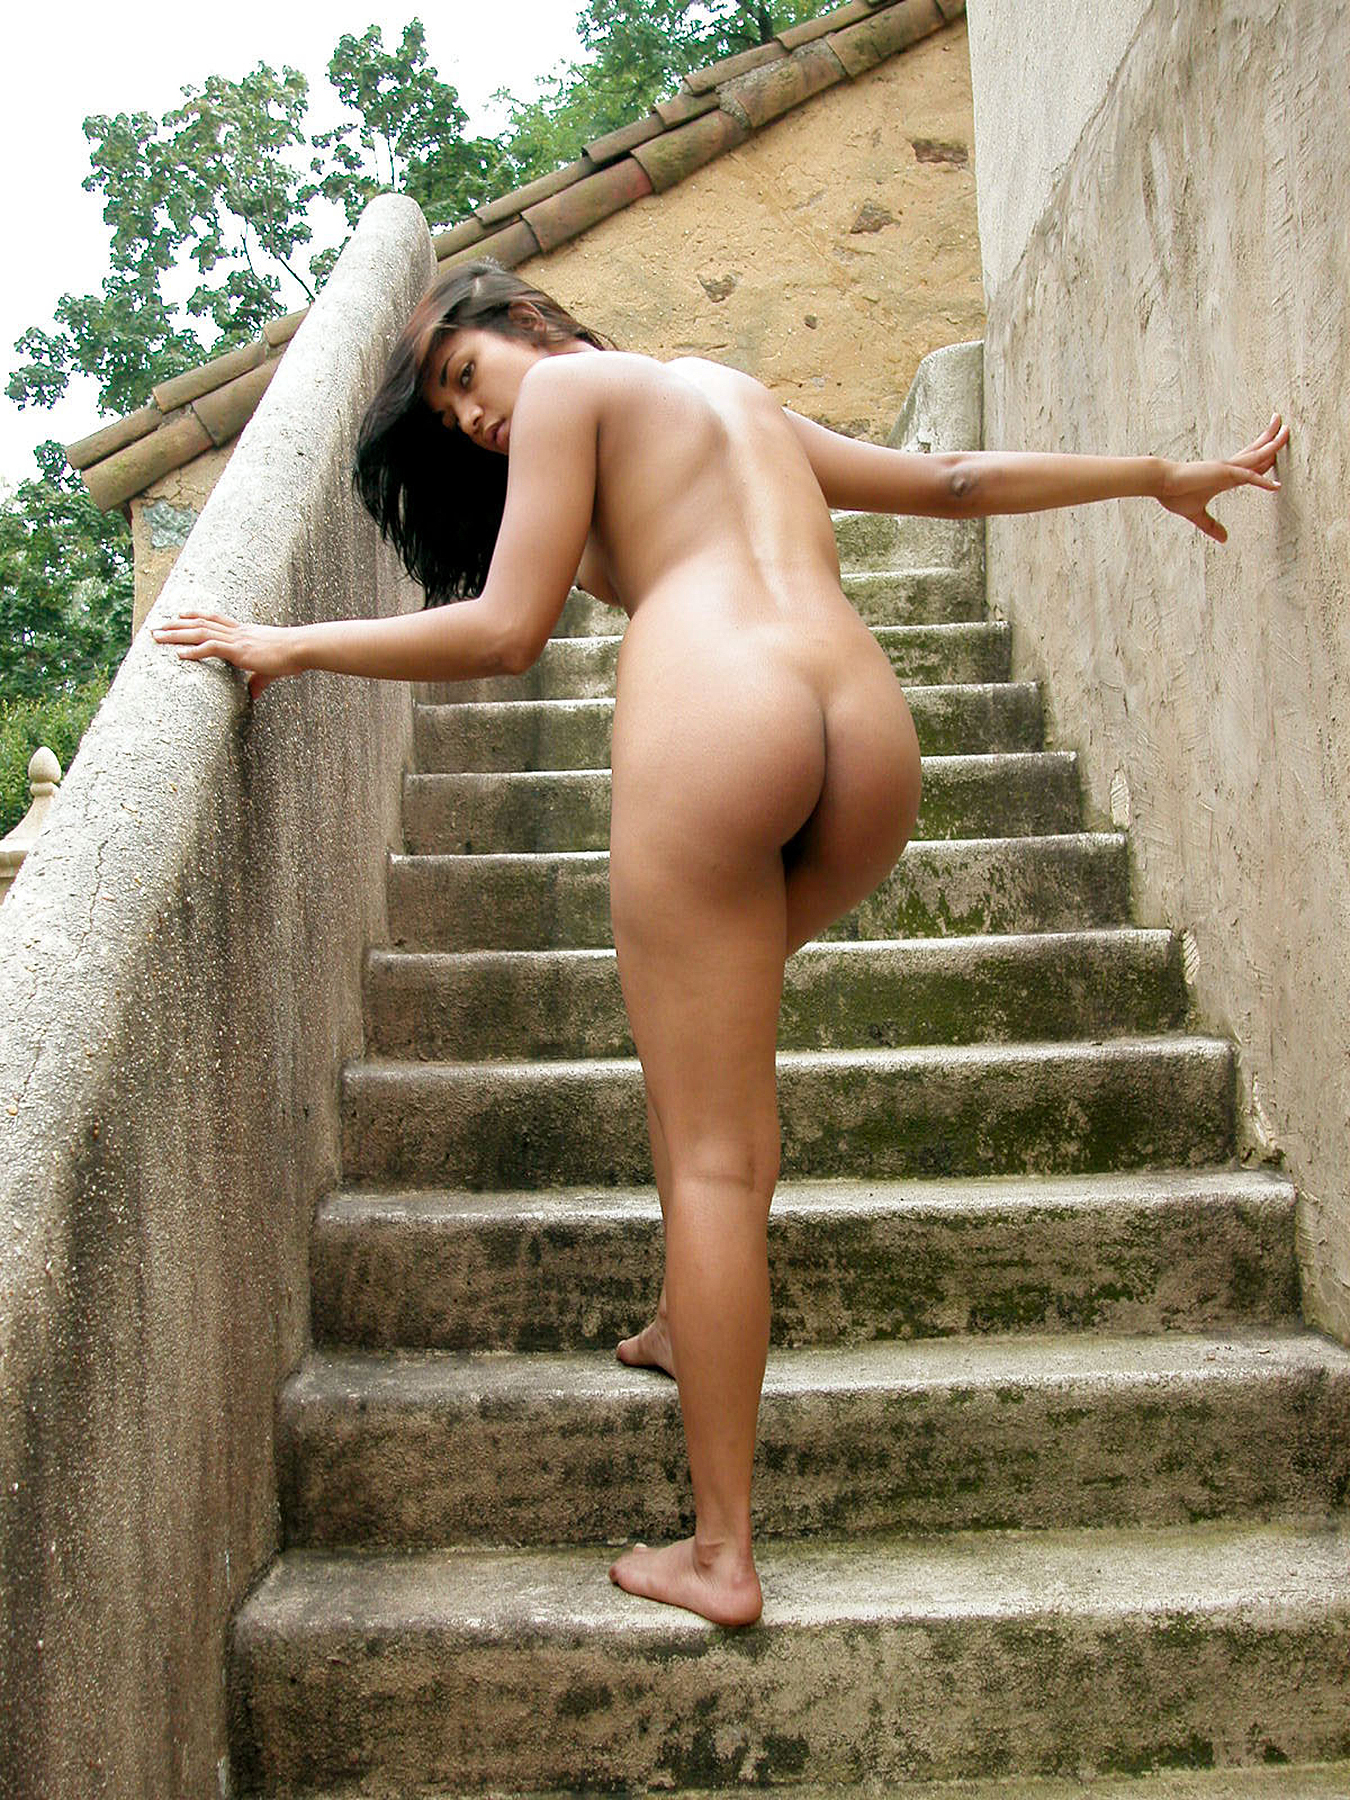 Hannah_nude_rear_stairs_outdoors_August_2003_